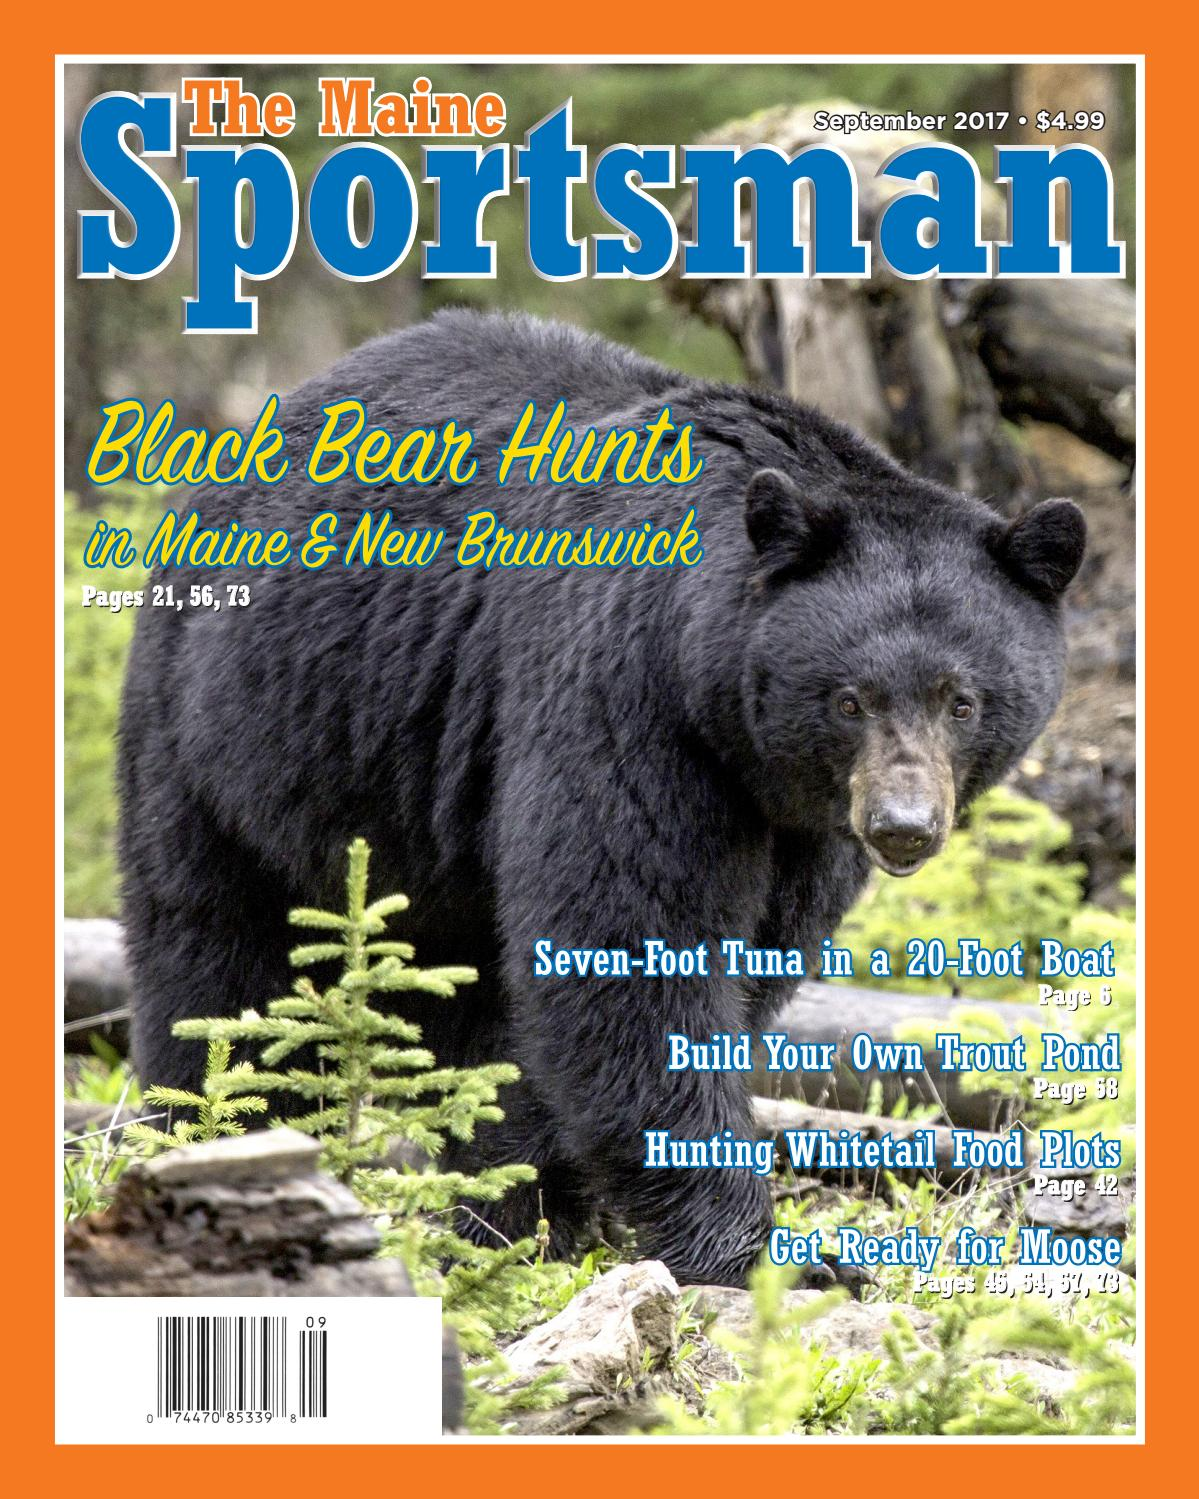 368f914429 The Maine Sportsman - September 2017 by The Maine Sportsman - Digital  Edition - issuu